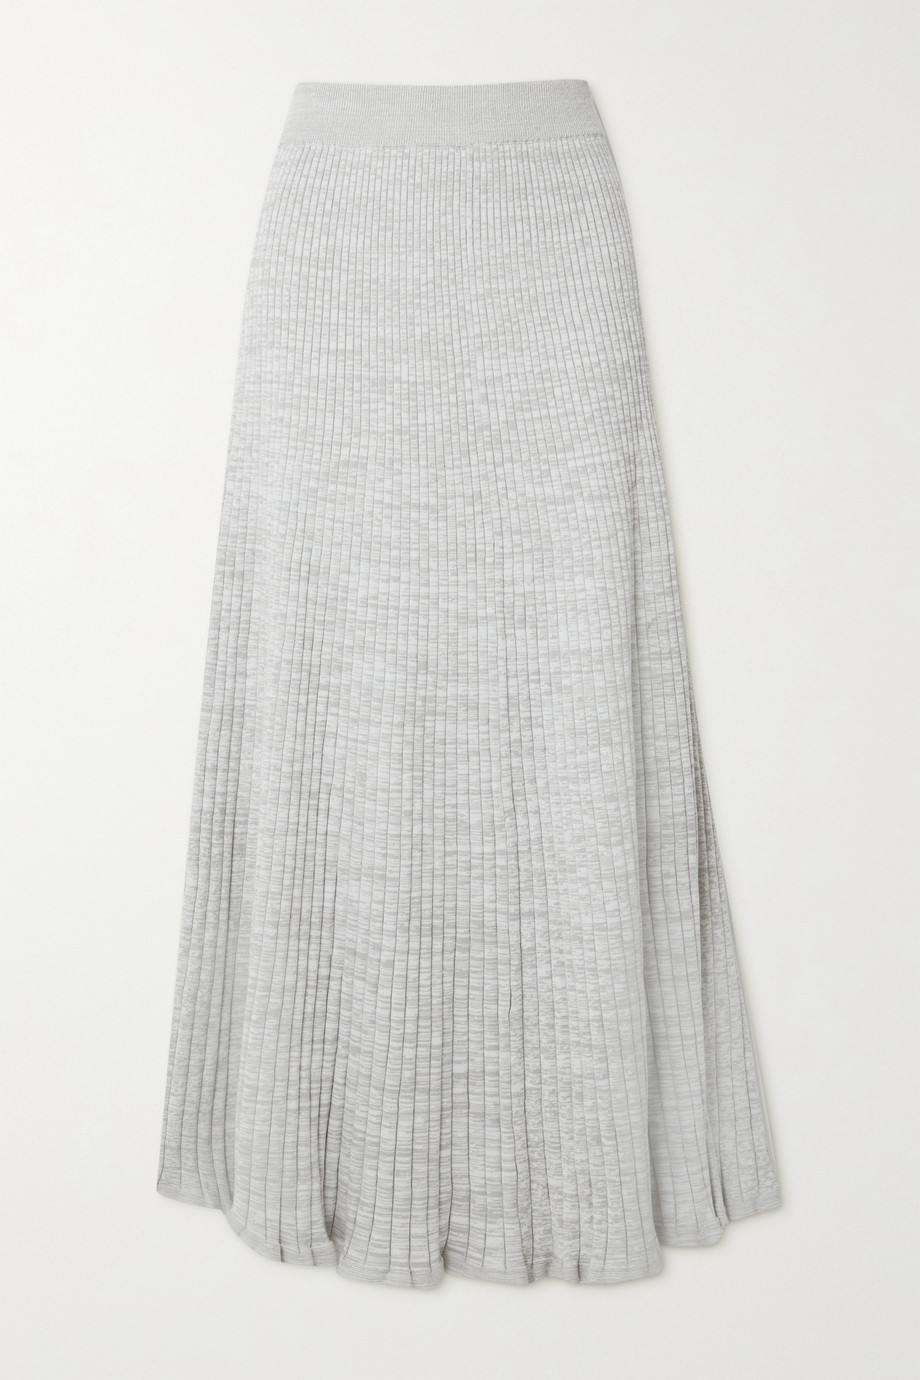 ANNA QUAN Selma ribbed cotton maxi skirt